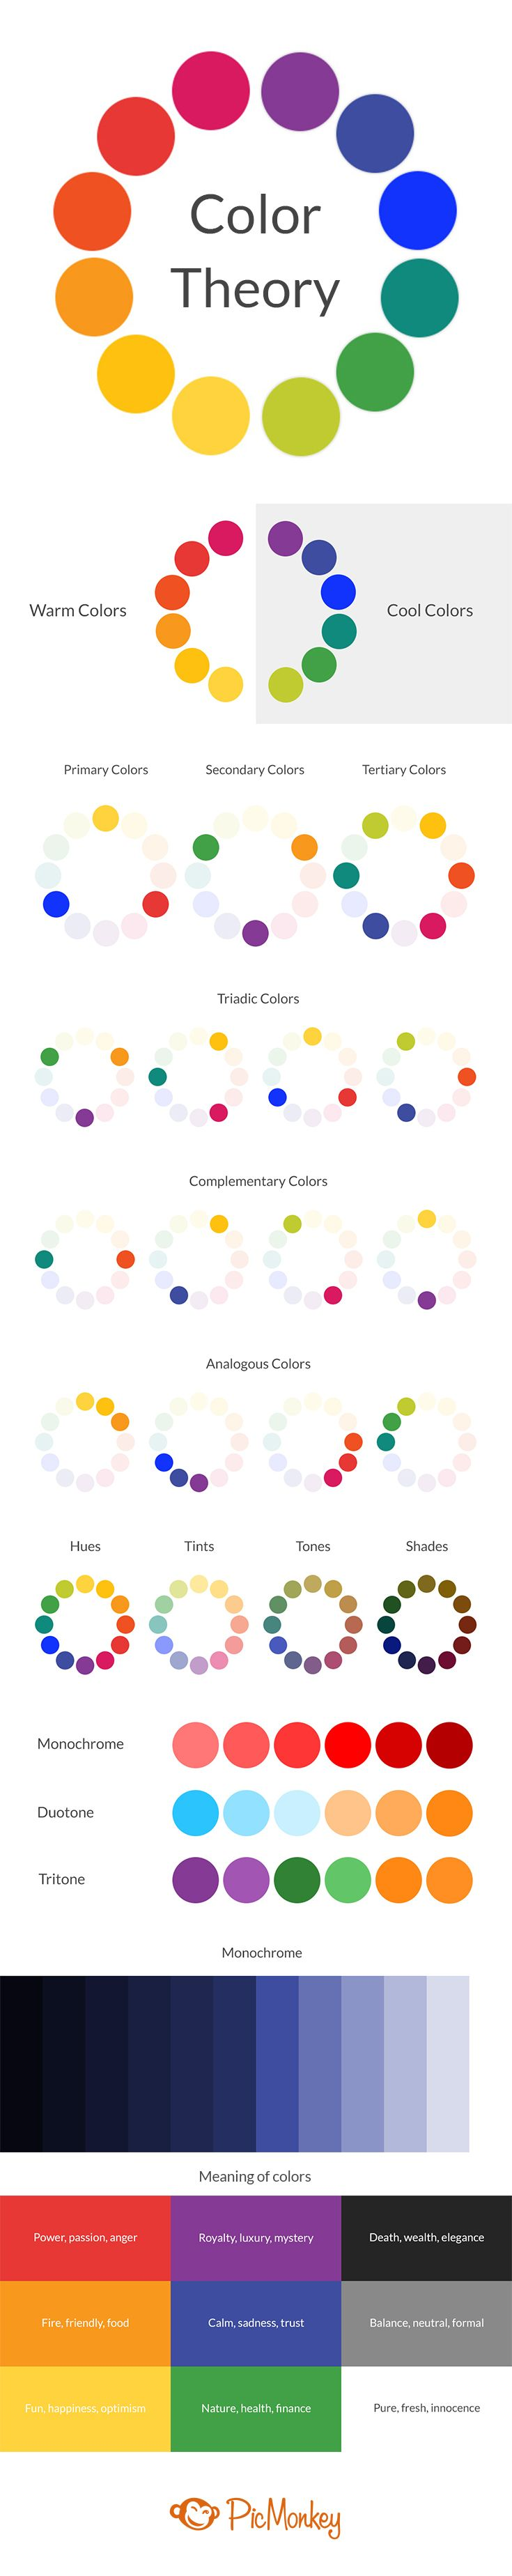 Color wheel complementary colors - Color Theory Choosing The Best Colors For Your Designs